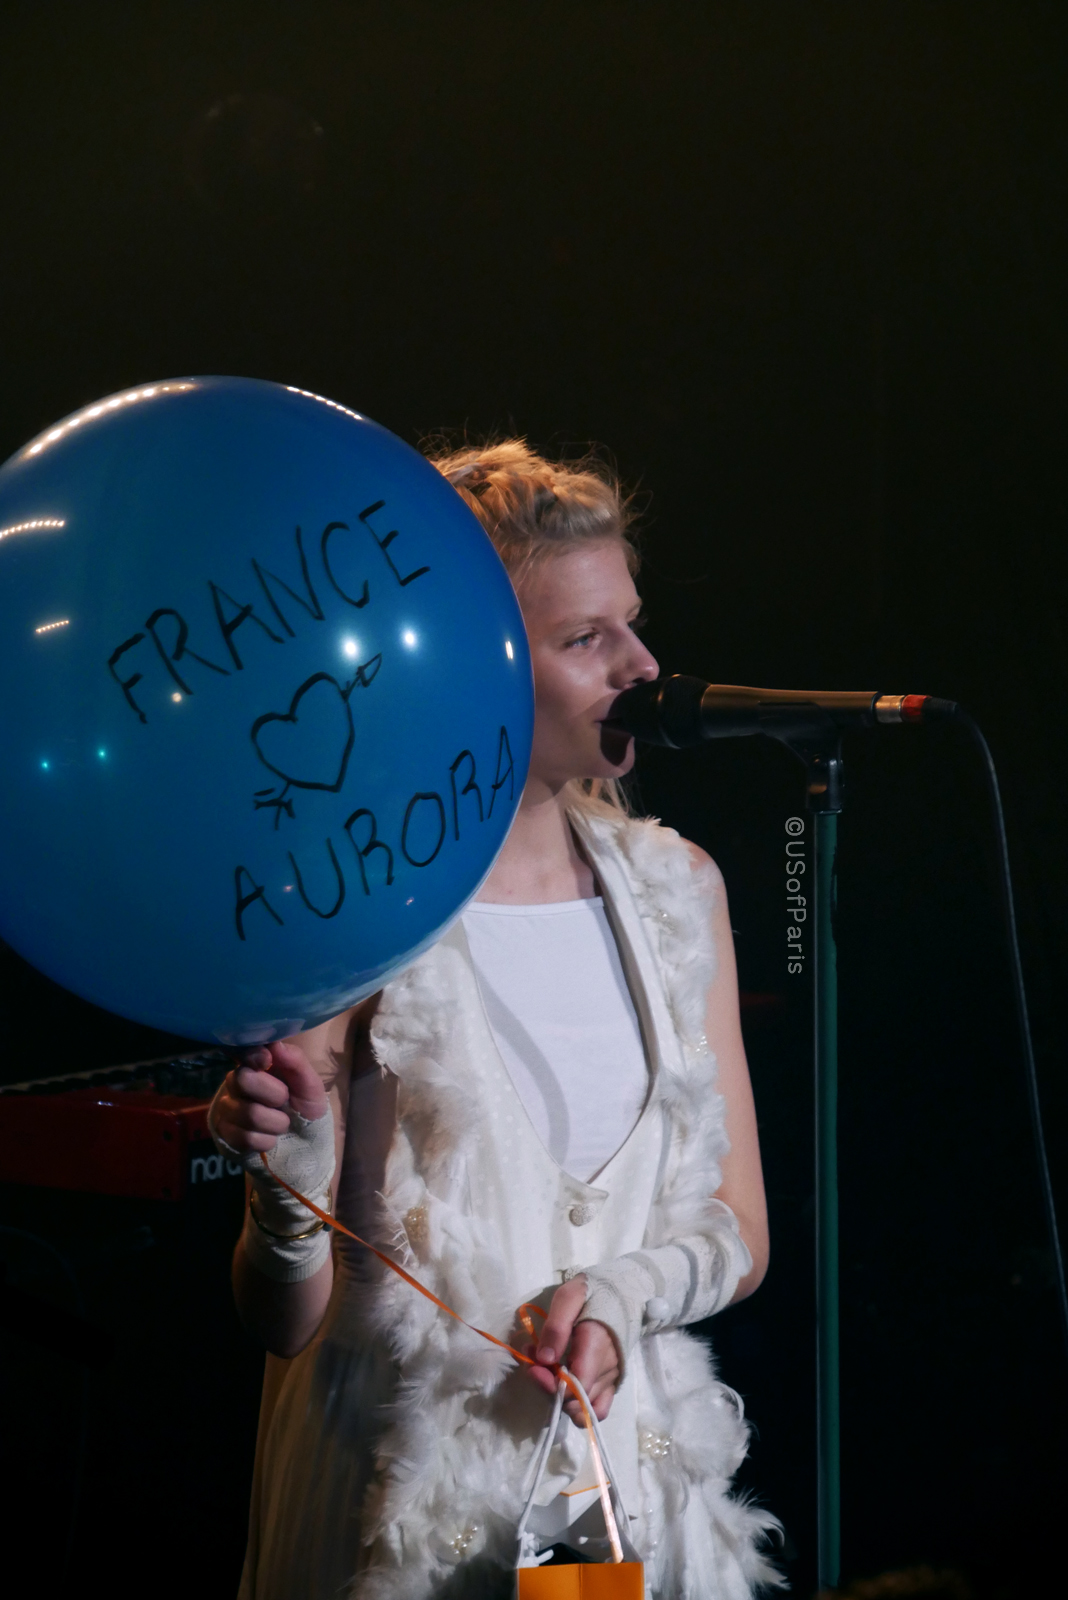 aurora-music-live-concert-paris-la-maroquinerie-balloon-french-fan-gift-stage-photo-usofparis-blog